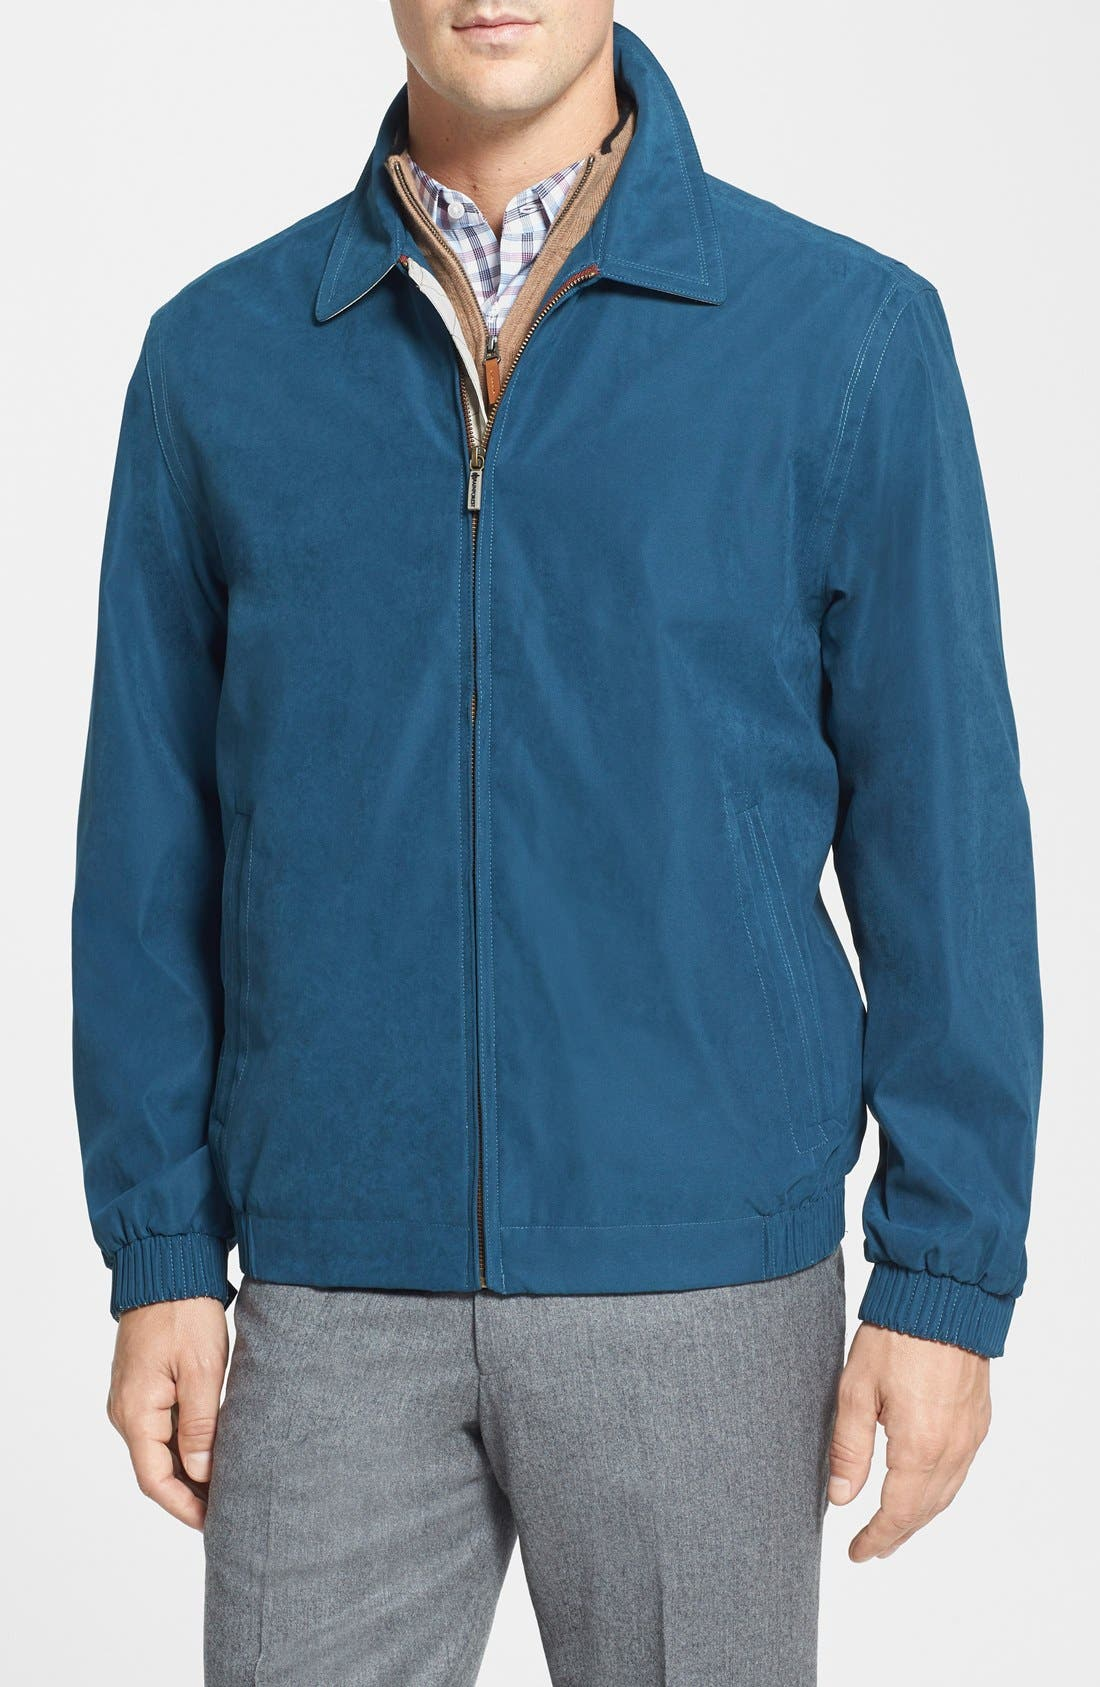 'Microseta' Lightweight Golf Jacket,                             Main thumbnail 8, color,